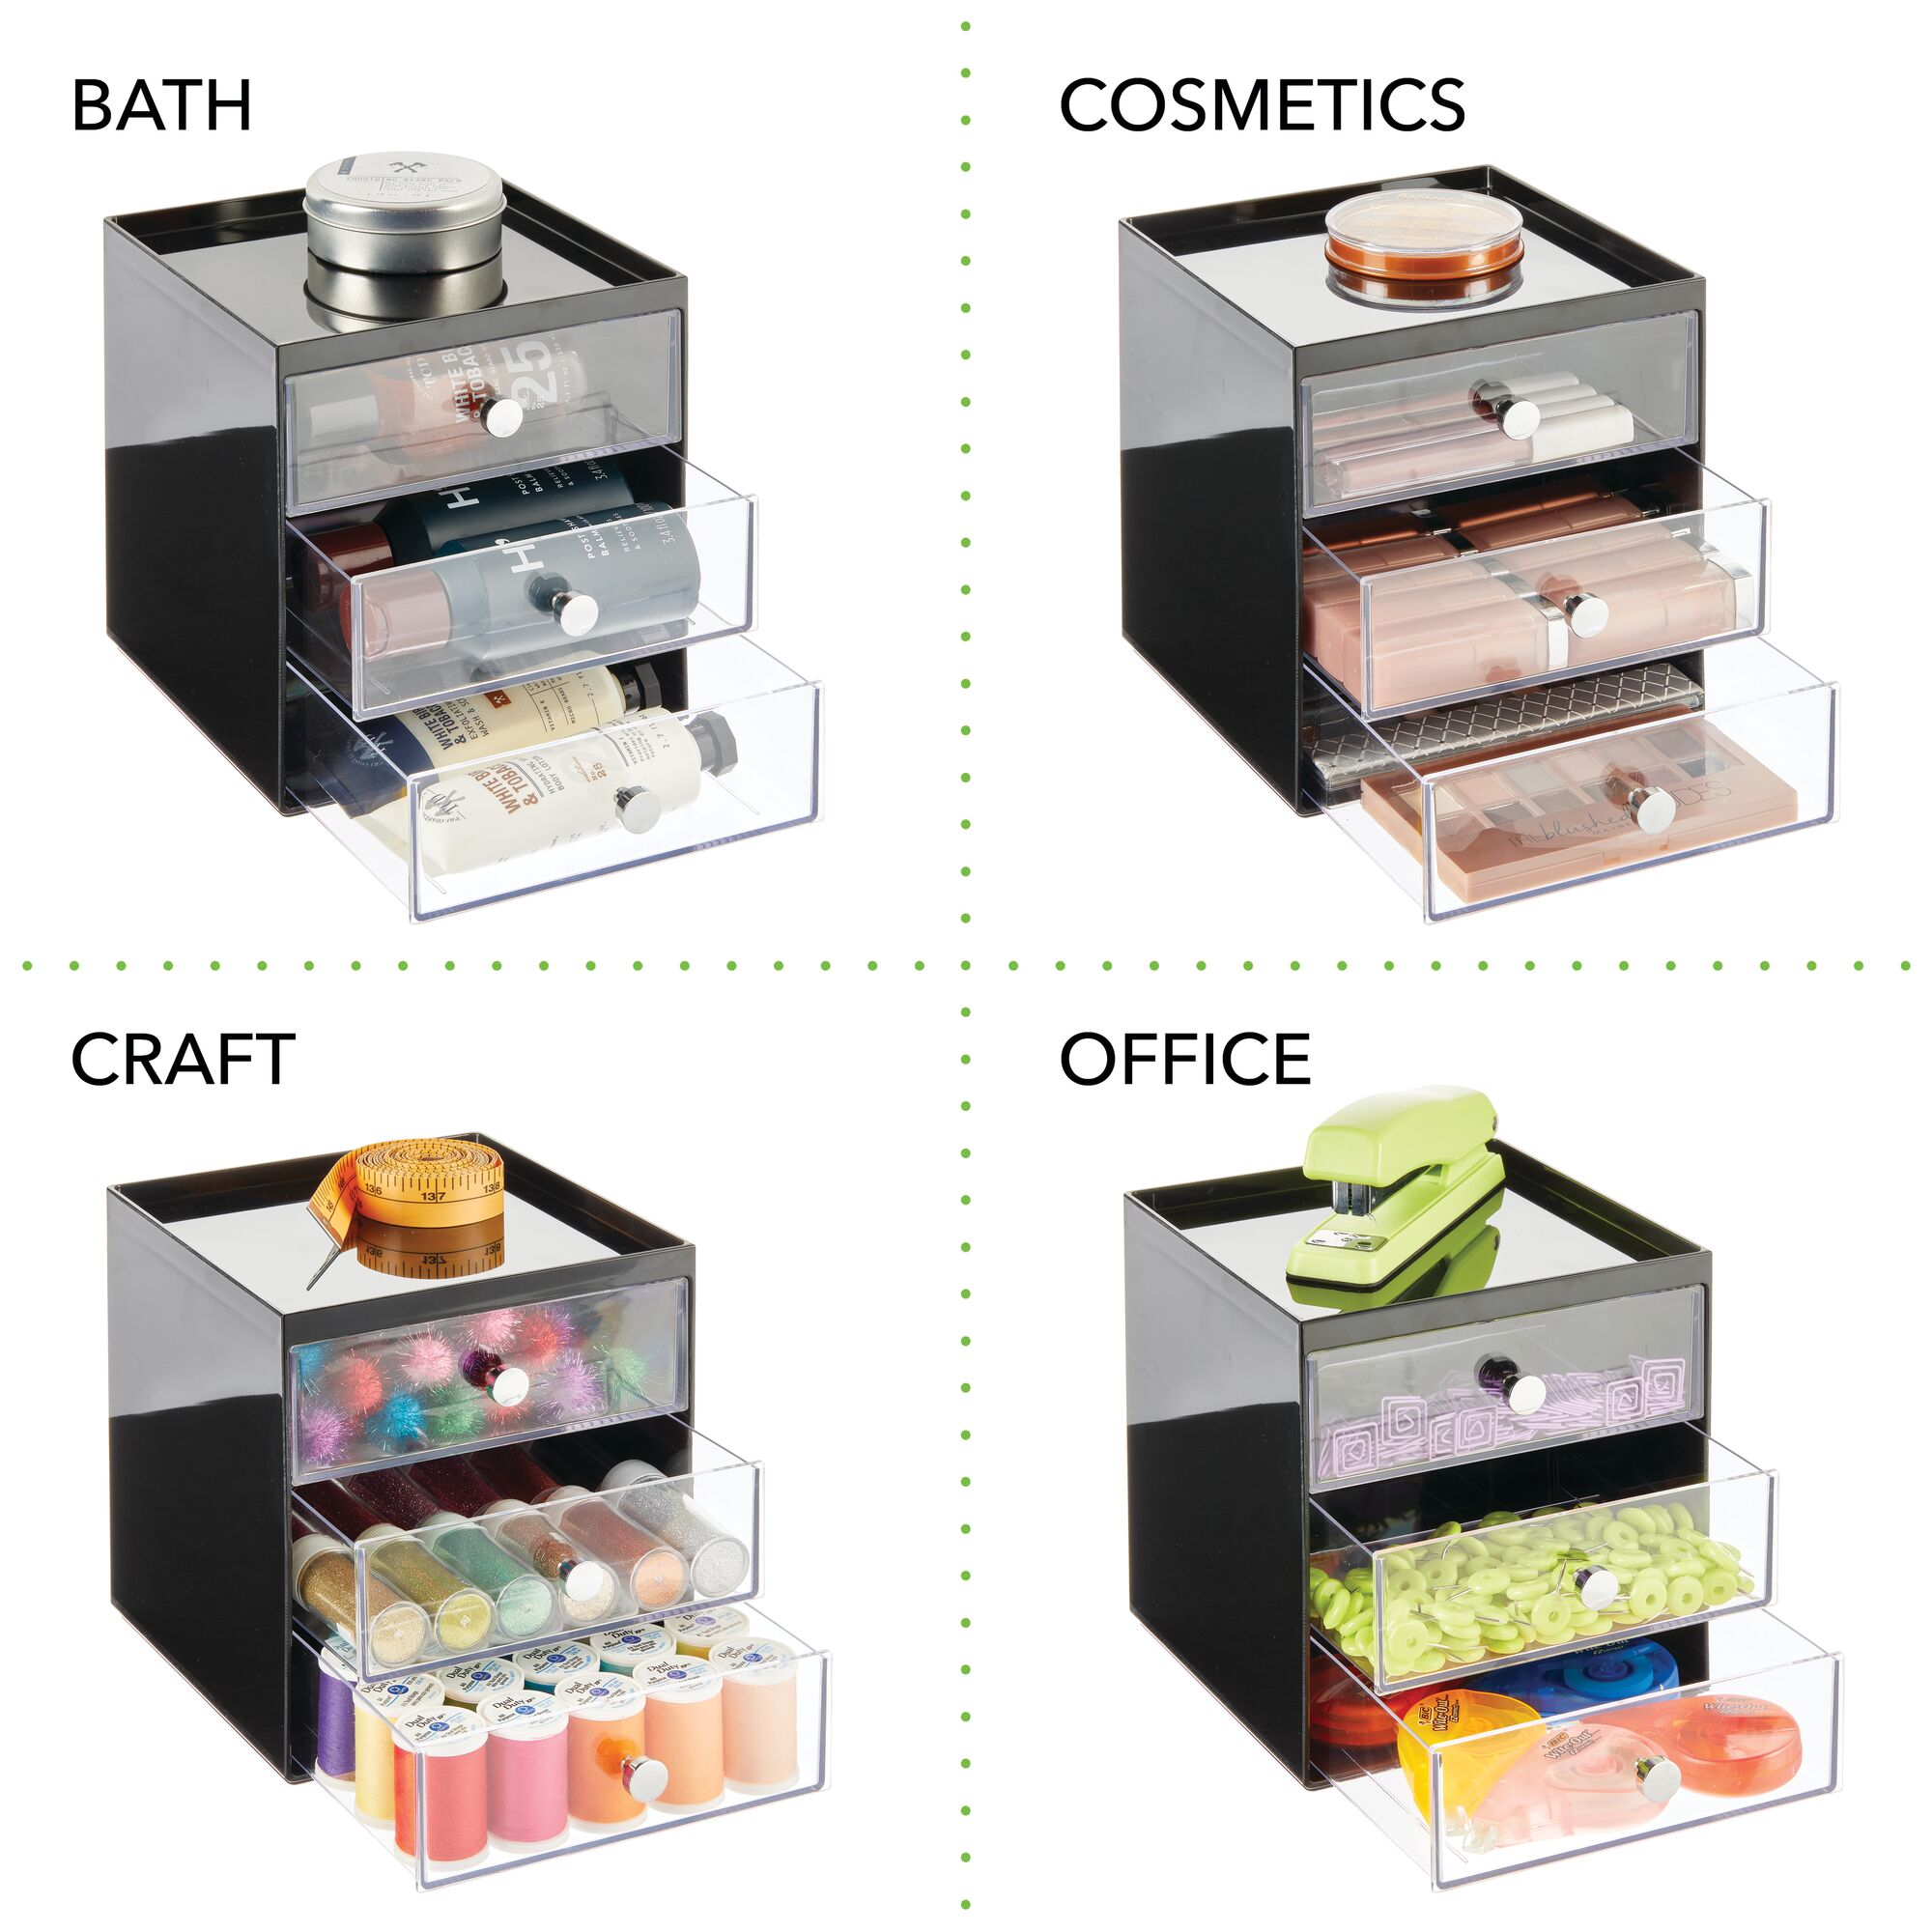 mDesign-Plastic-Makeup-Storage-Organizer-Cube-3-Drawers thumbnail 21